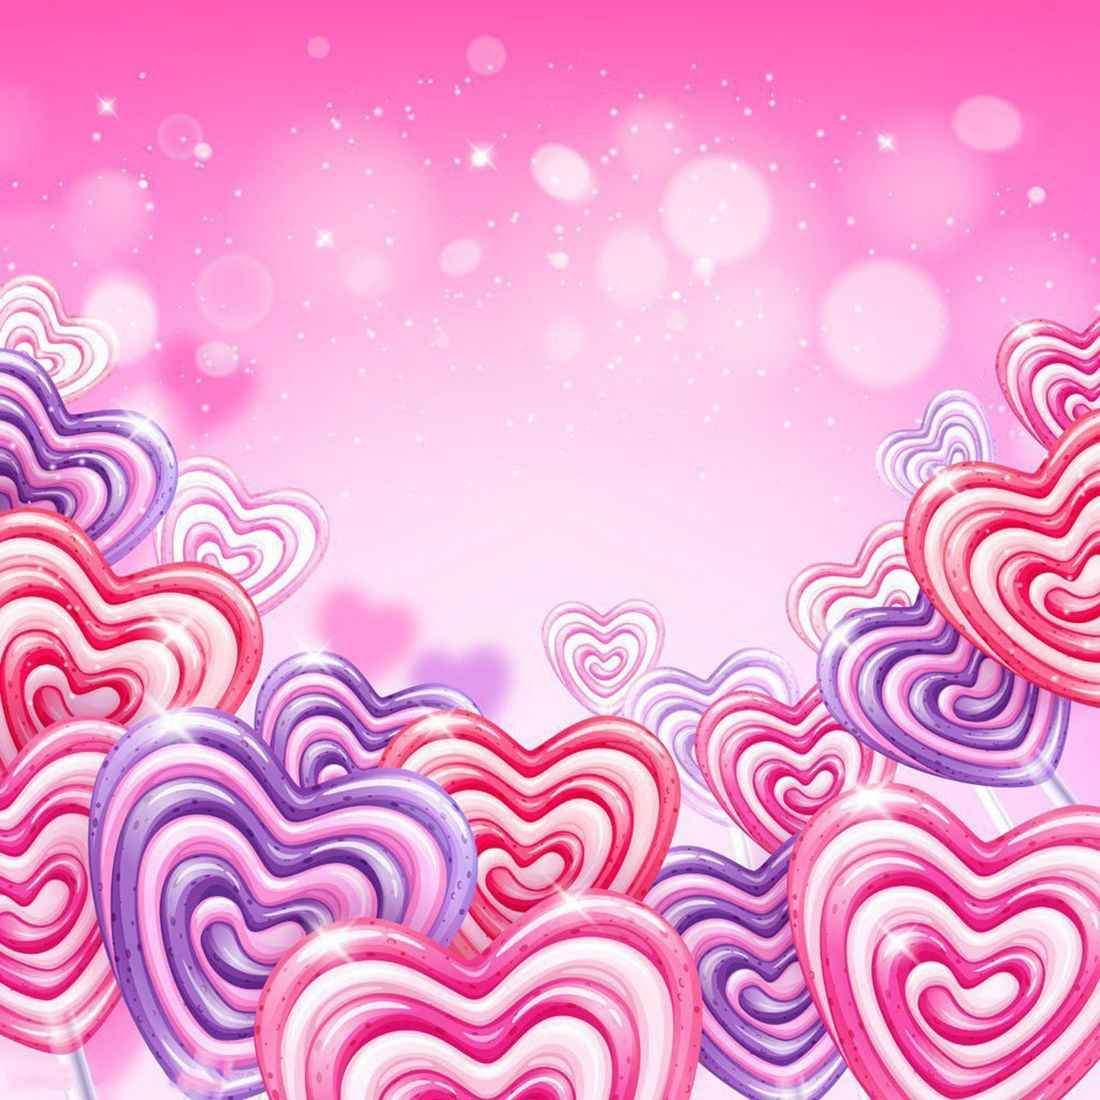 5x7ft Valentines Day Backdrop Sweet Hearts Lollipops Background Bokeh Halos Glitter Sequins Romantic Wedding Vinyl Photograph